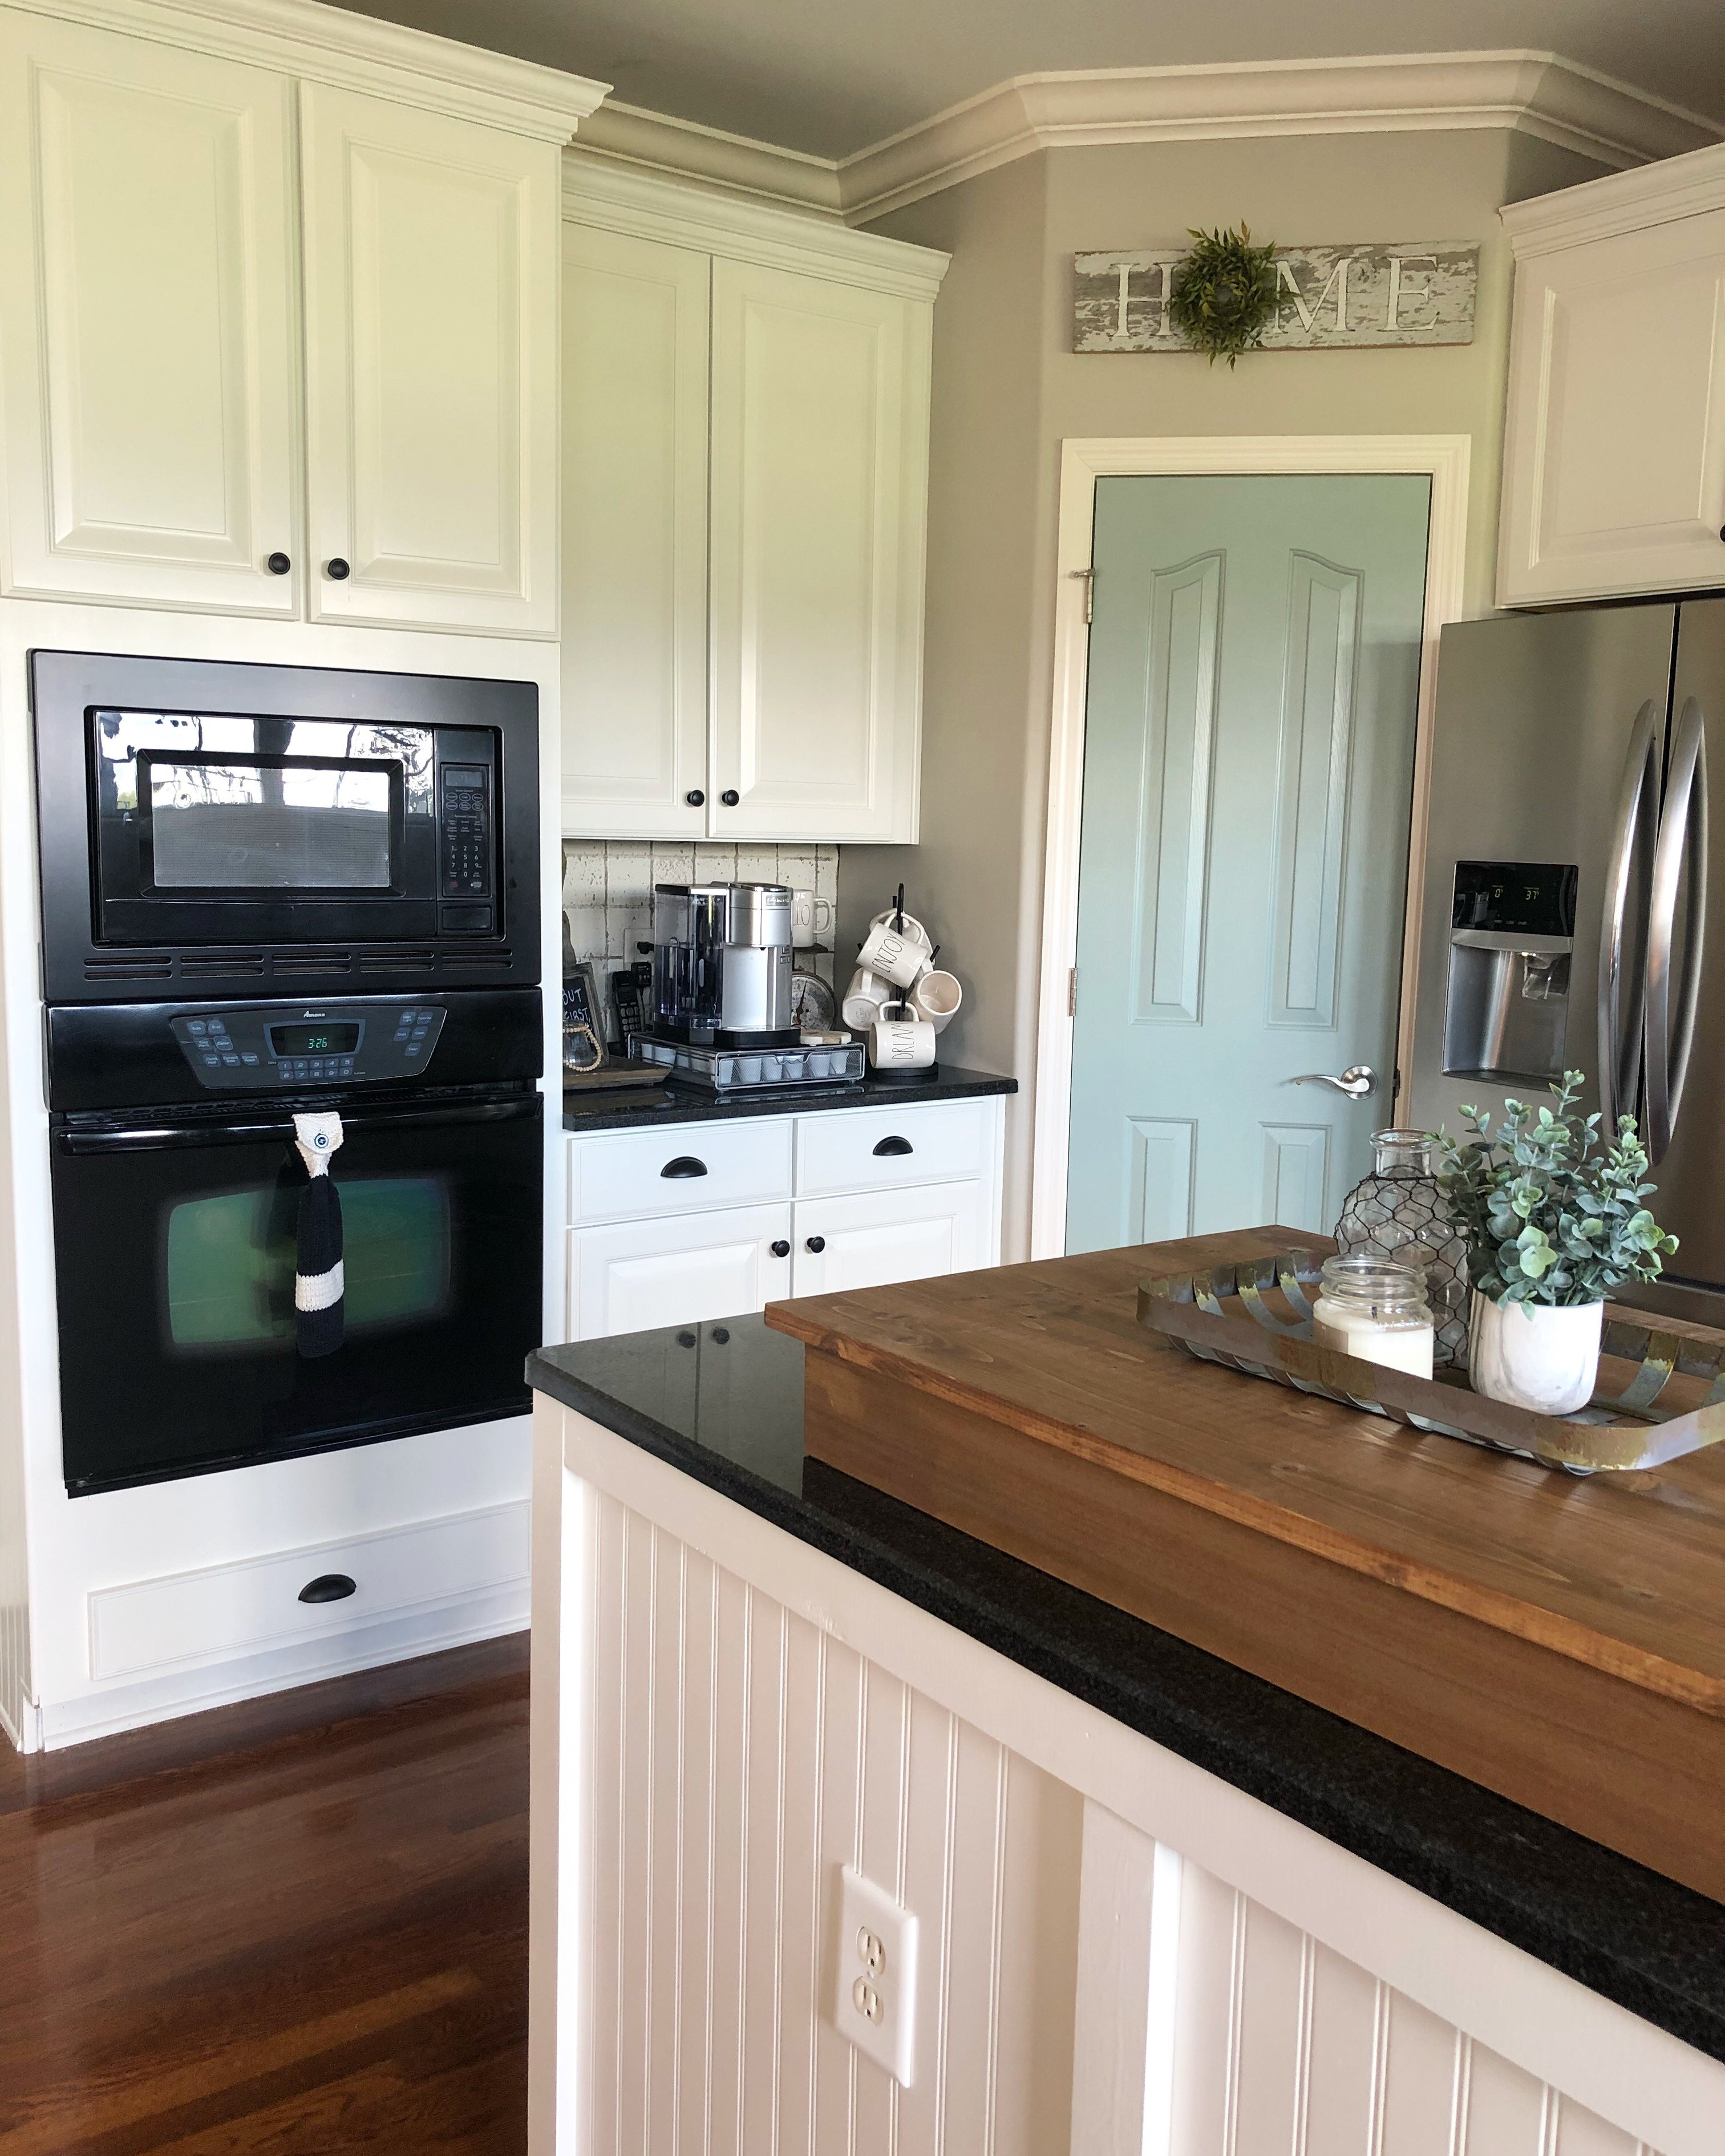 Let Me Know What You Think Of This Painted Kitchen Cabinet Makeover!